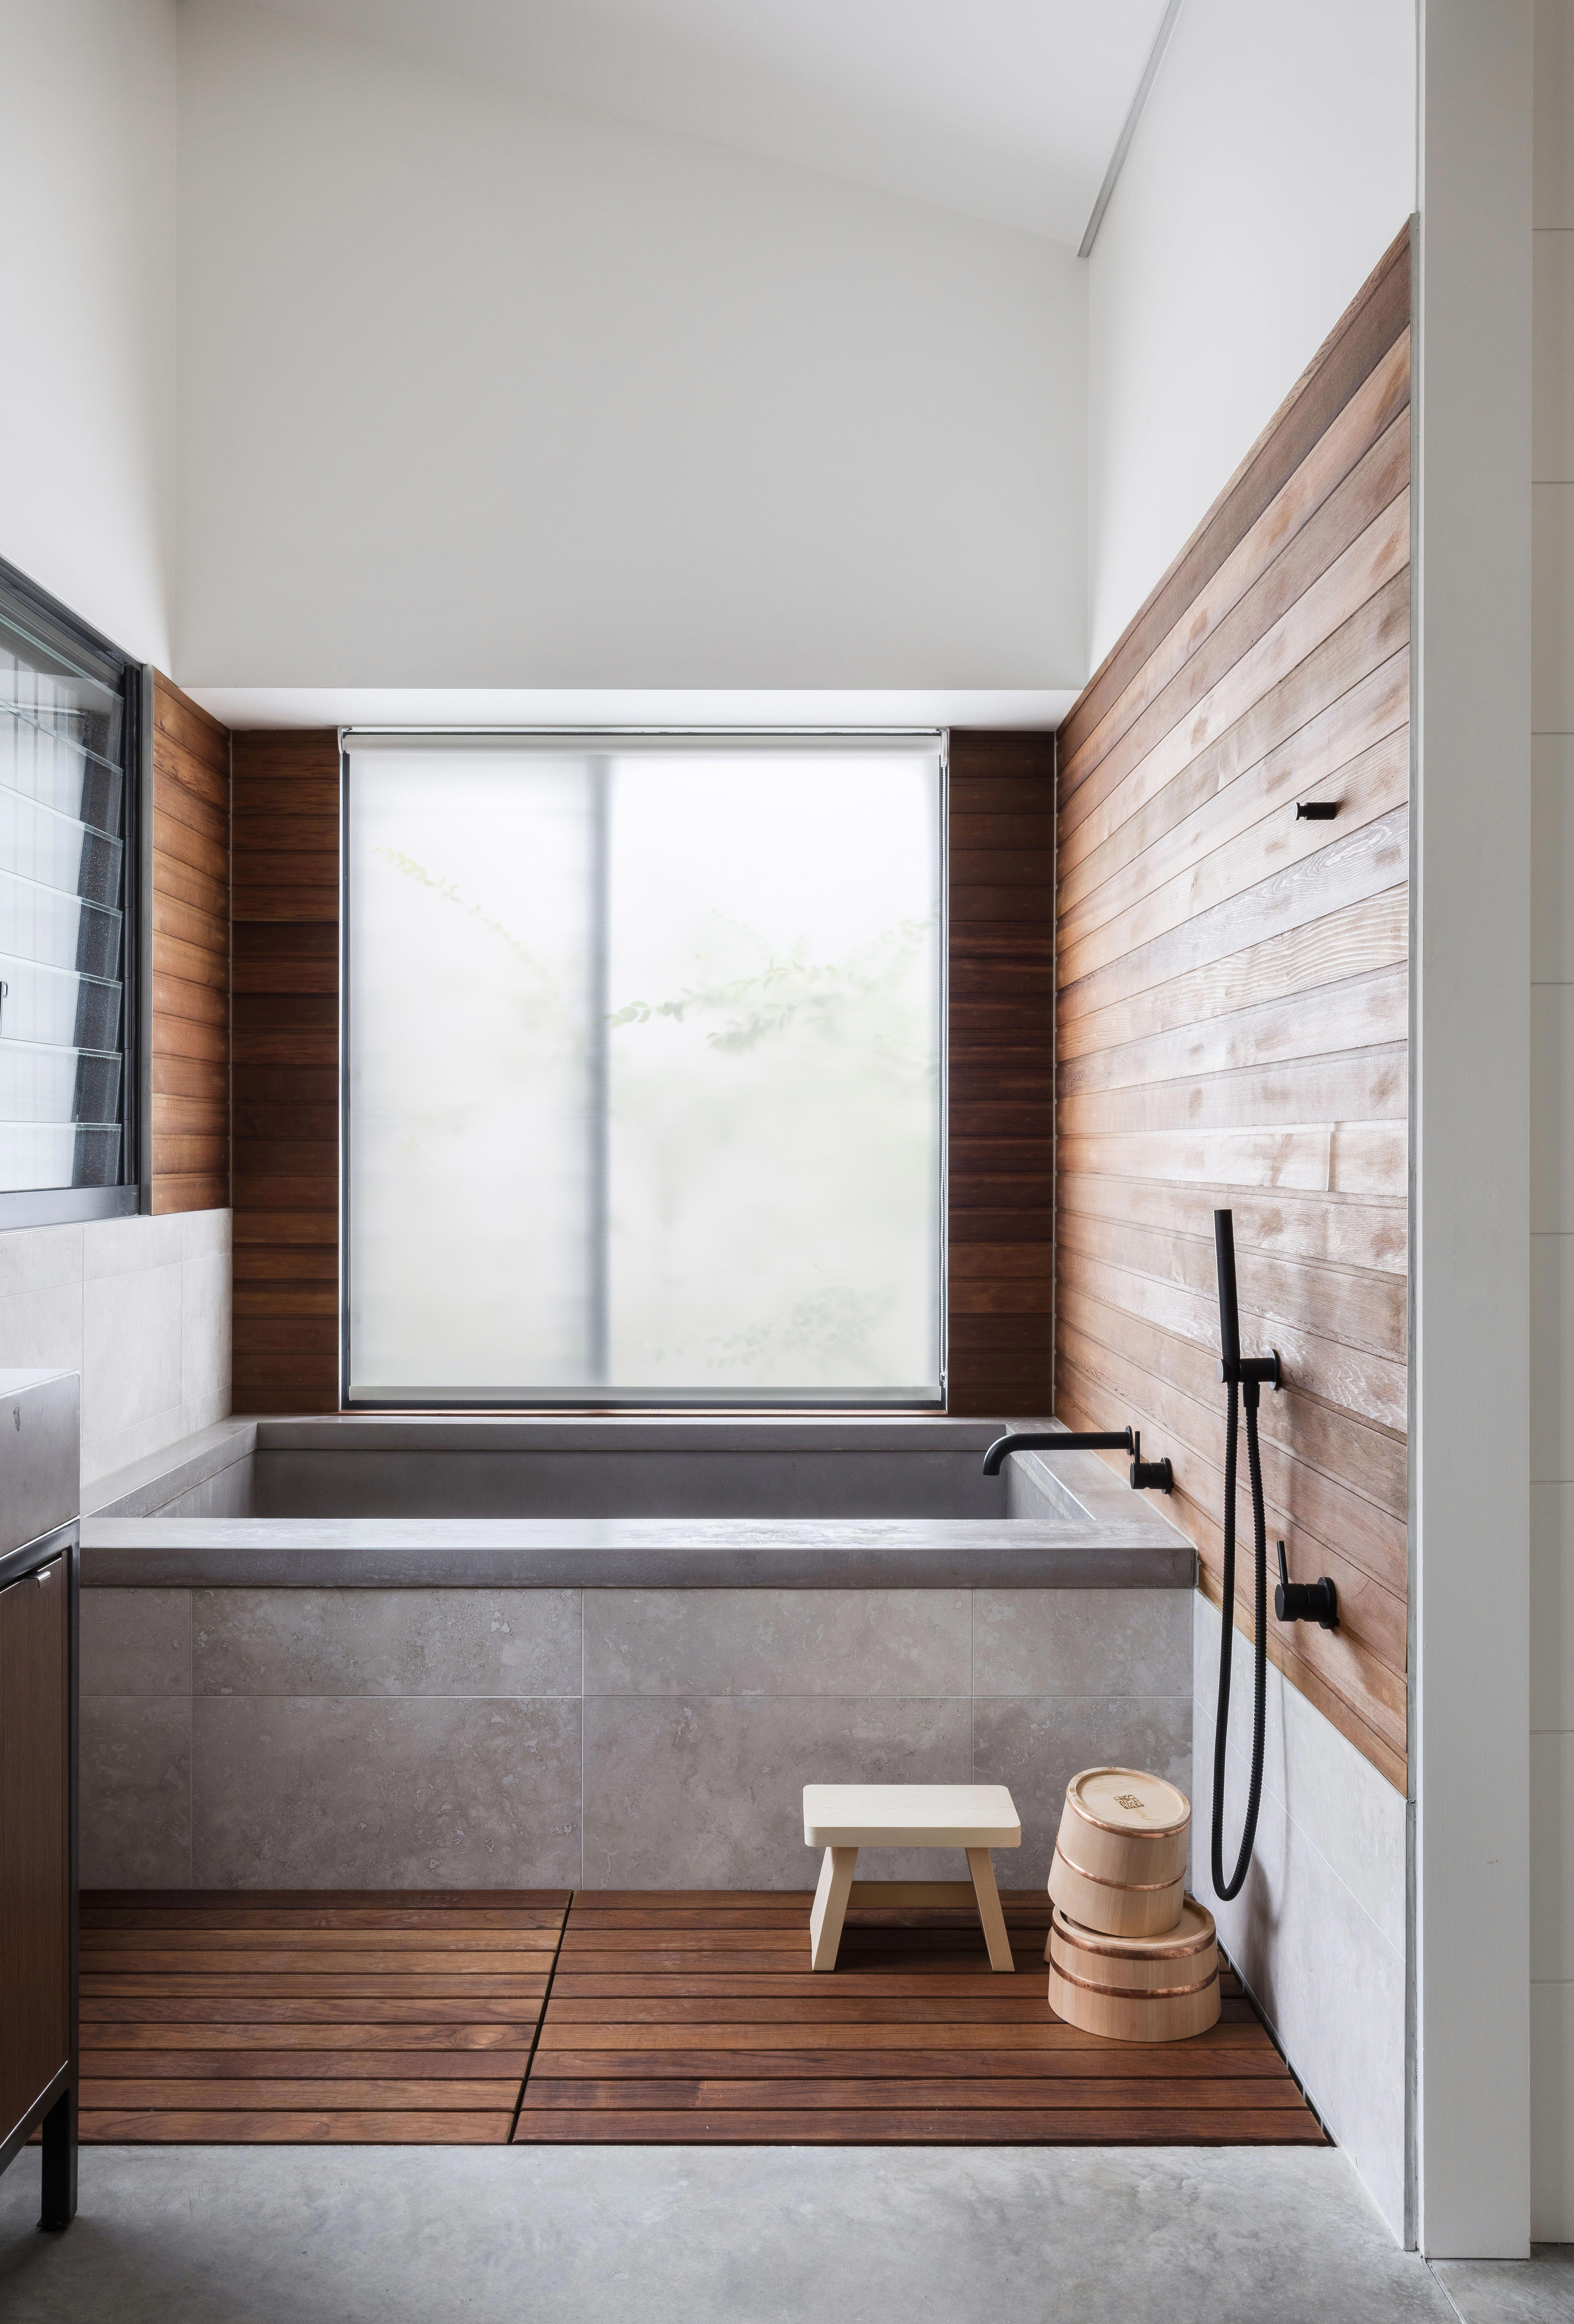 This Japanese Inspired Bathroom At A Home In Orange Features A